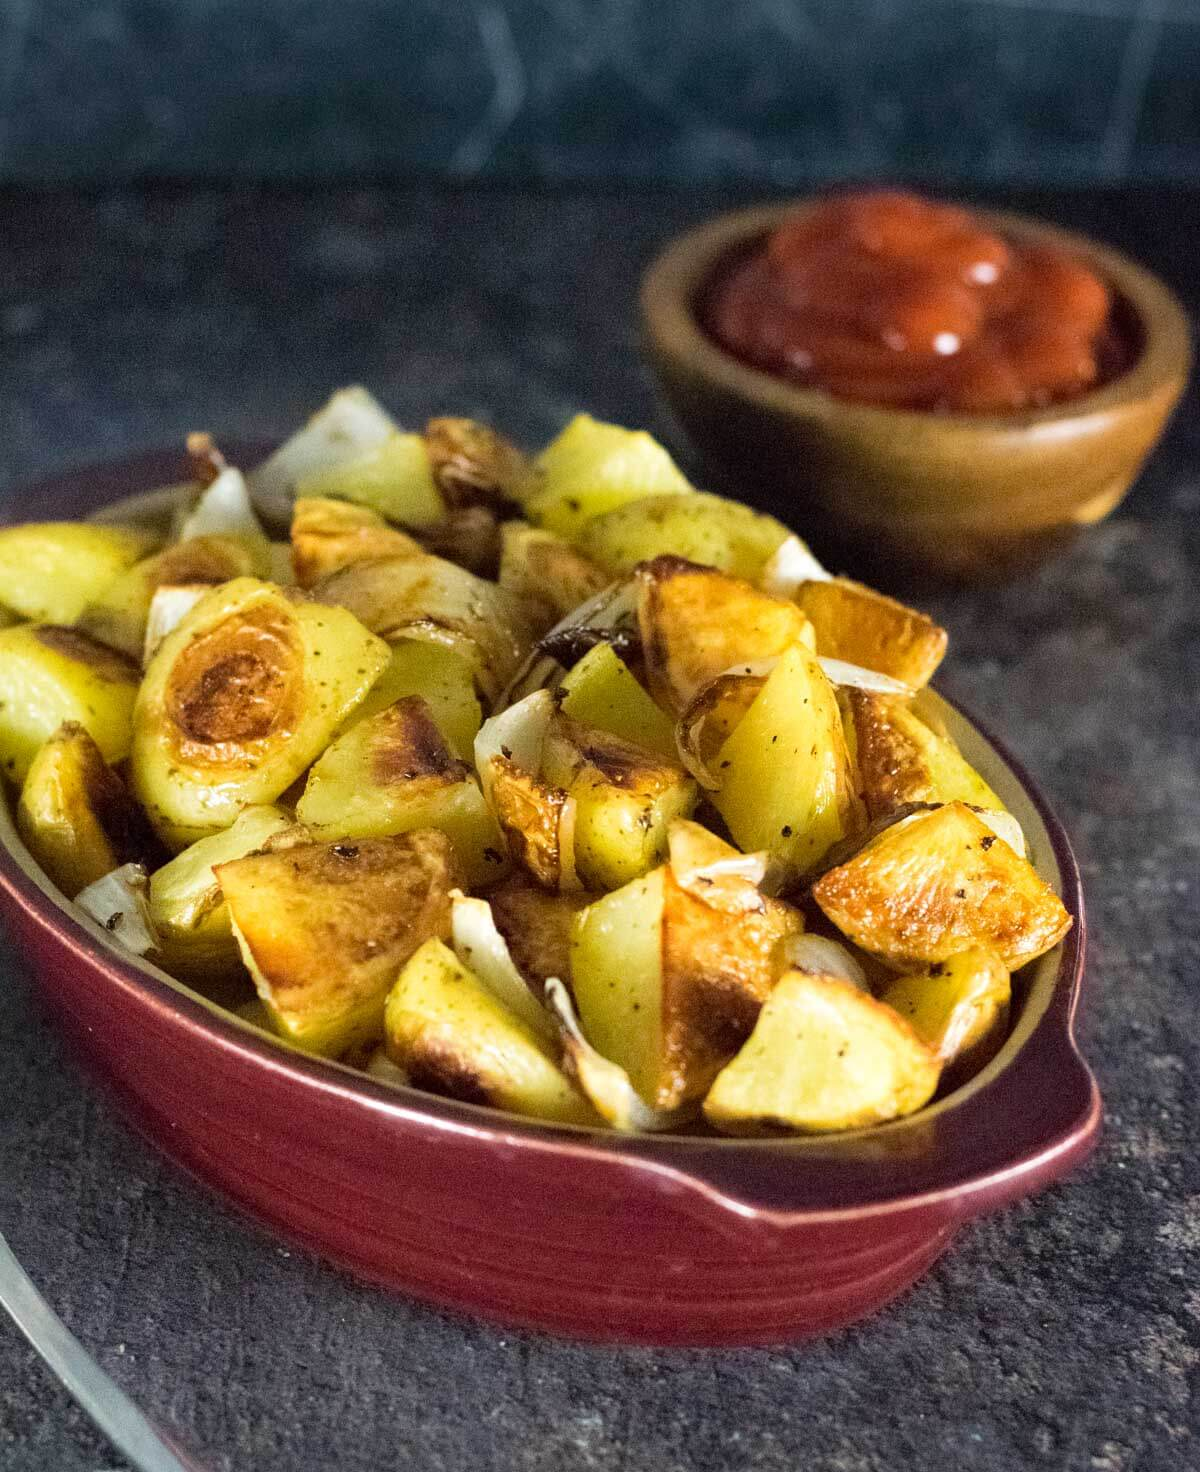 Potatoes and onion with bowl of ketchup.